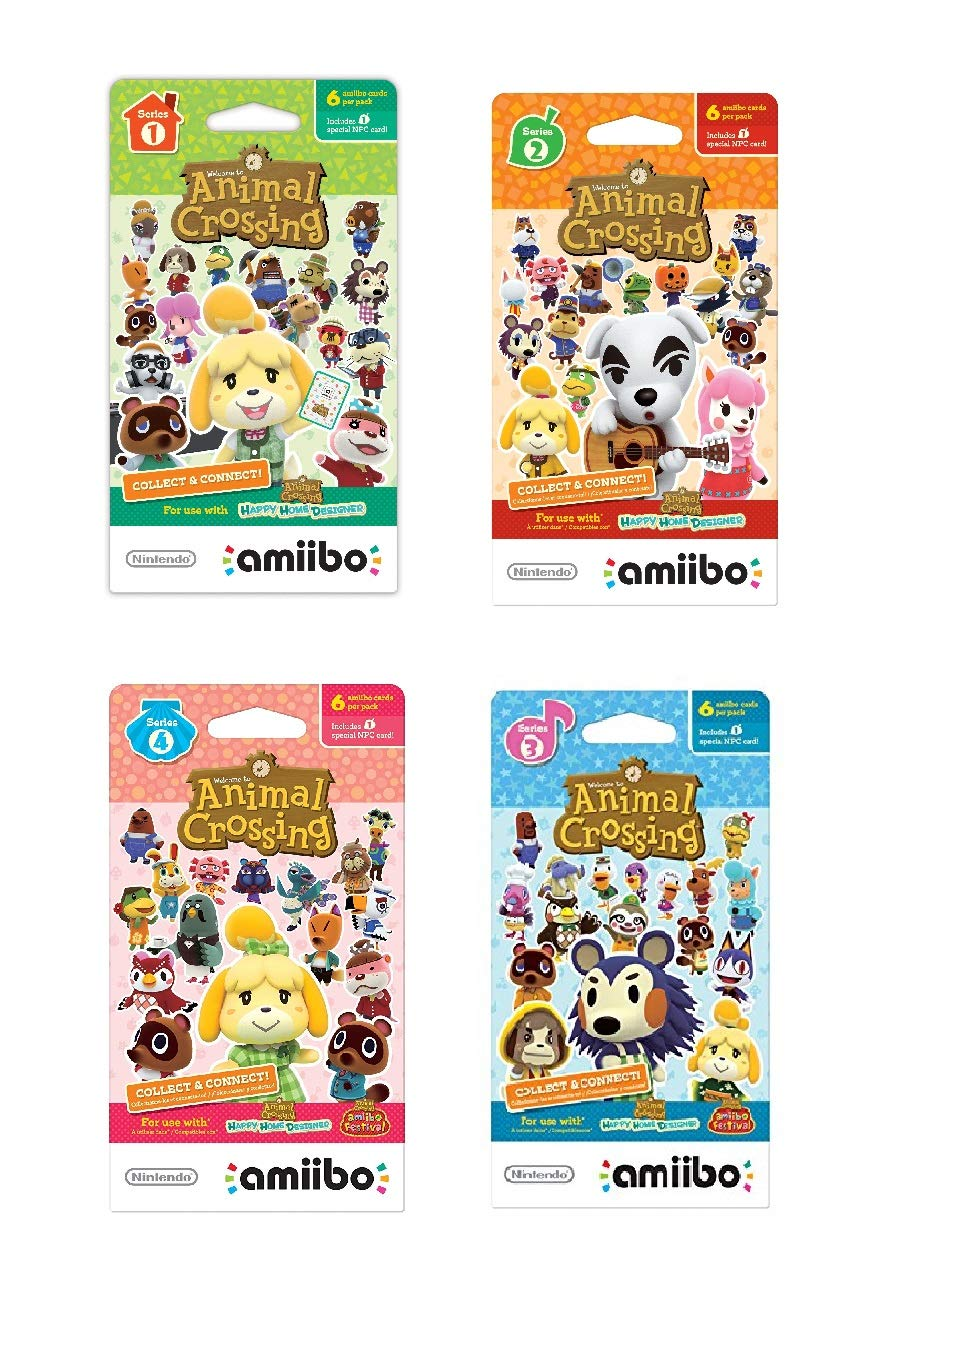 Nintendo Animal Crossing amiibo Cards Series 1, 2, 3, 4 for Nintendo Wii U and 3DS, 1-Pack (6 Cards/Pack) (Bundle) Includes 24 Cards Total by Nintendo (Image #1)